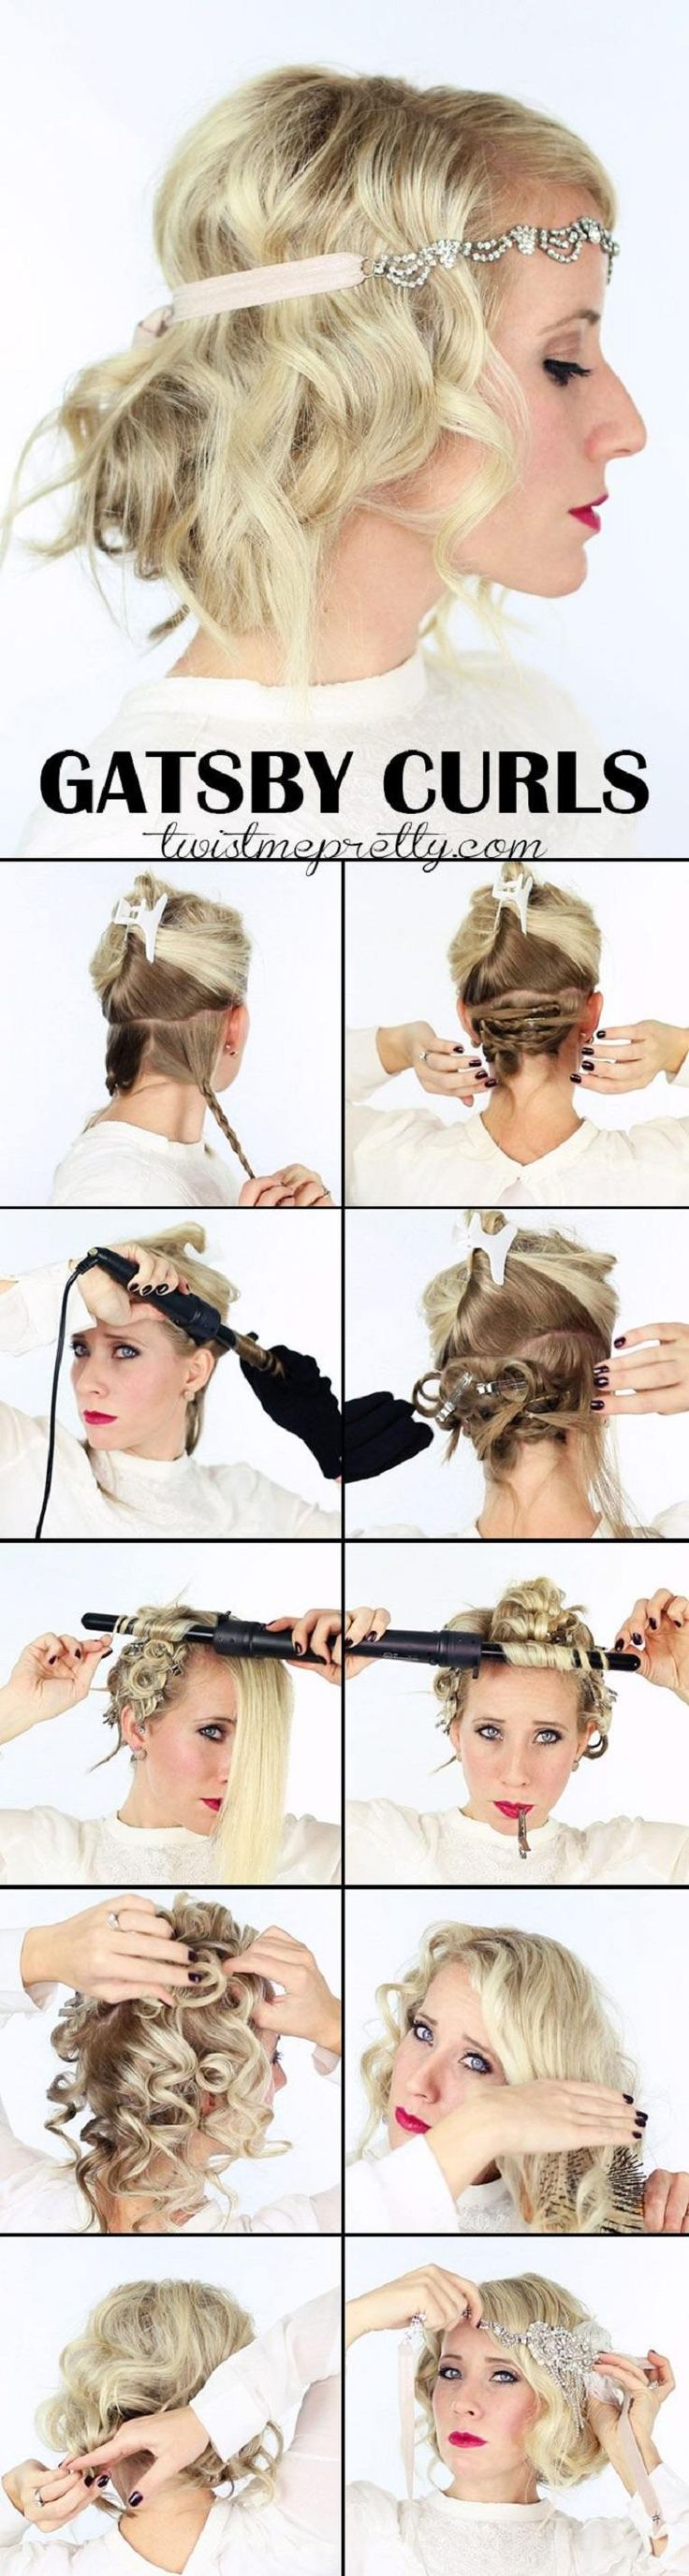 1179 best Wedding Hair - Brides images on Pinterest | Bridal, Bride ...